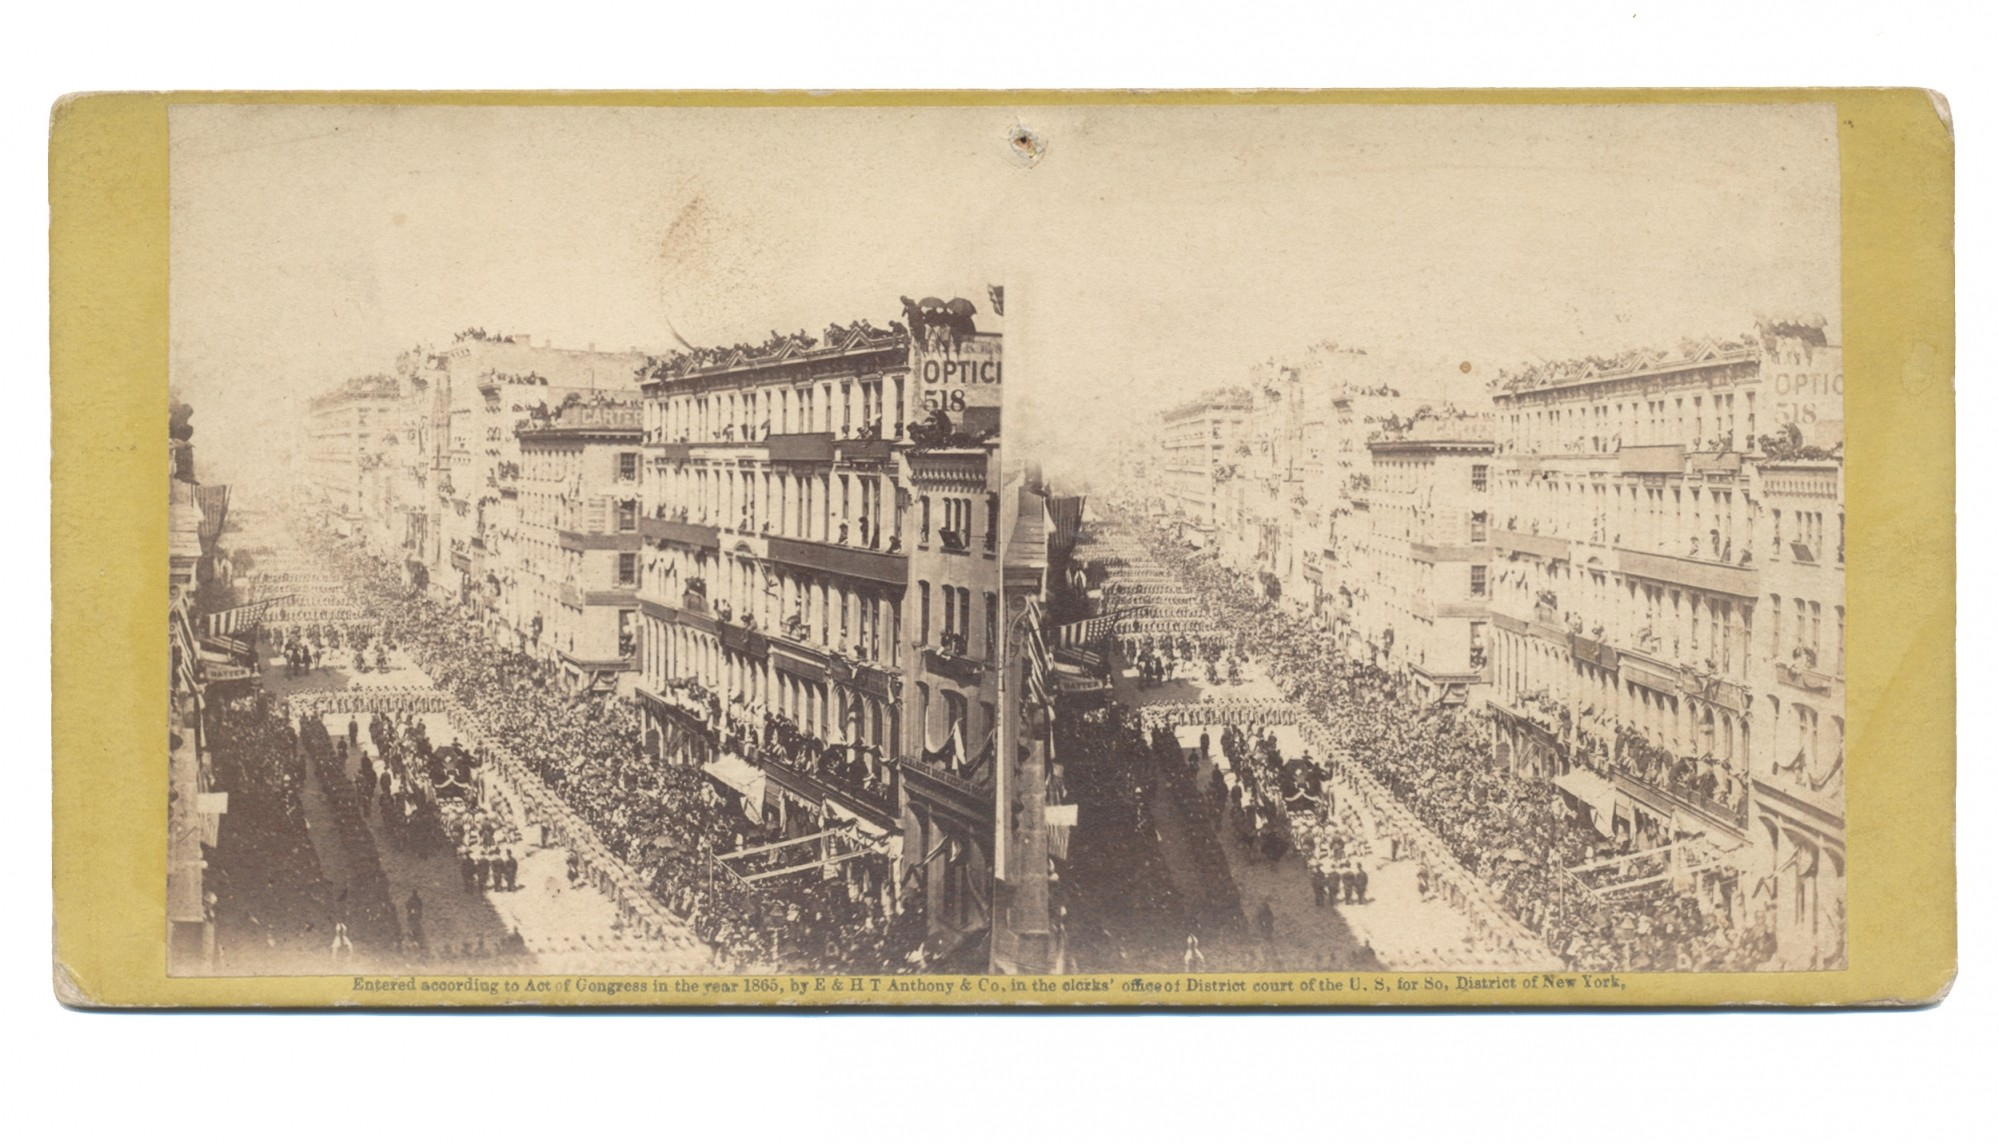 STEREO VIEW OF PRESIDENT LINCOLN'S FUNERAL PROCESSION IN NEW YORK CITY